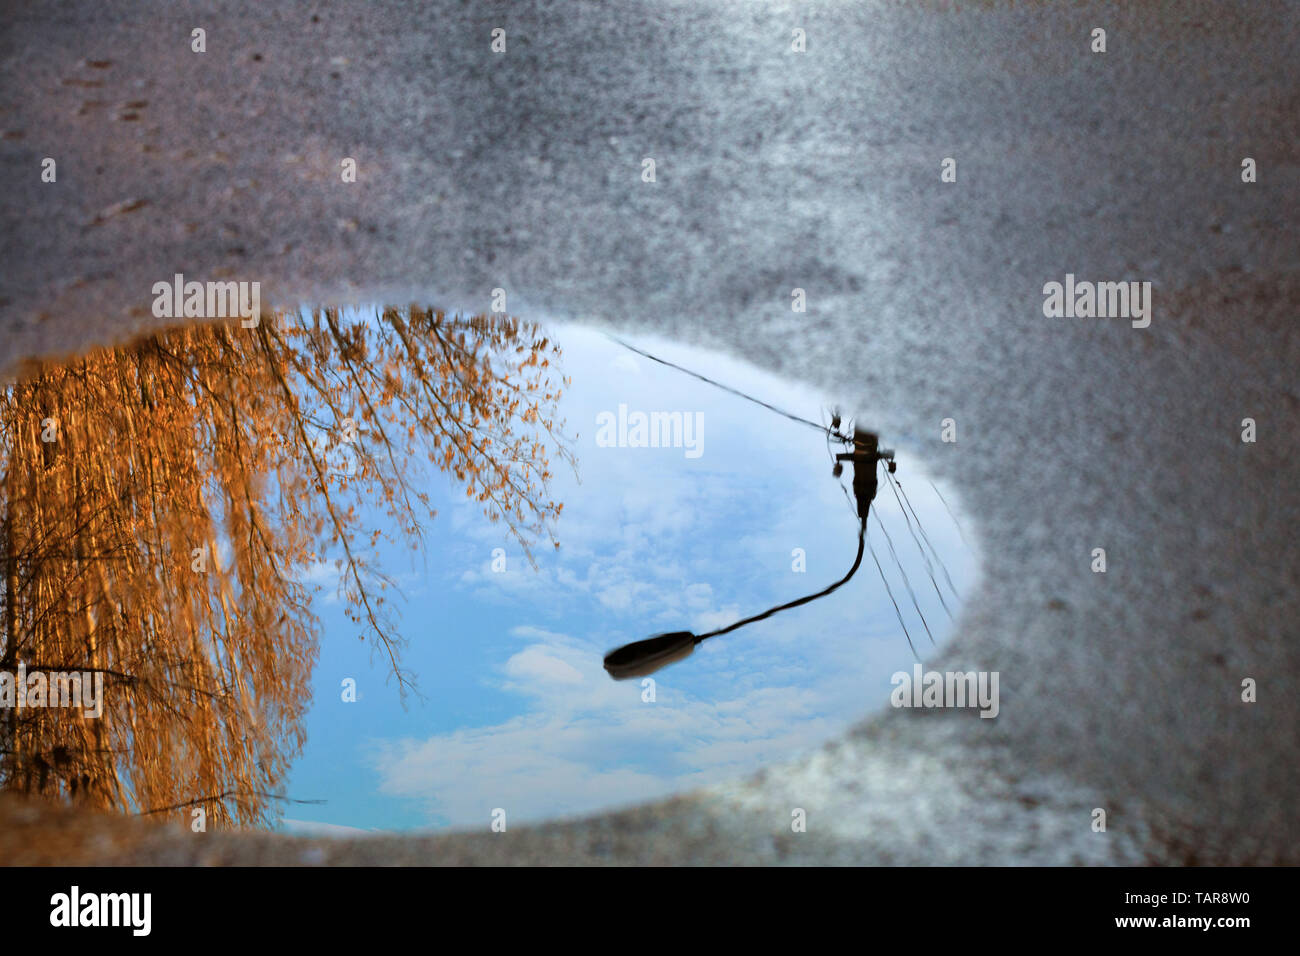 Mirror blurred reflection after a rain of the blue cloudy sky, the silhouette of a street lamp and a tree sunlit in a puddle on the asphalt. - Stock Image